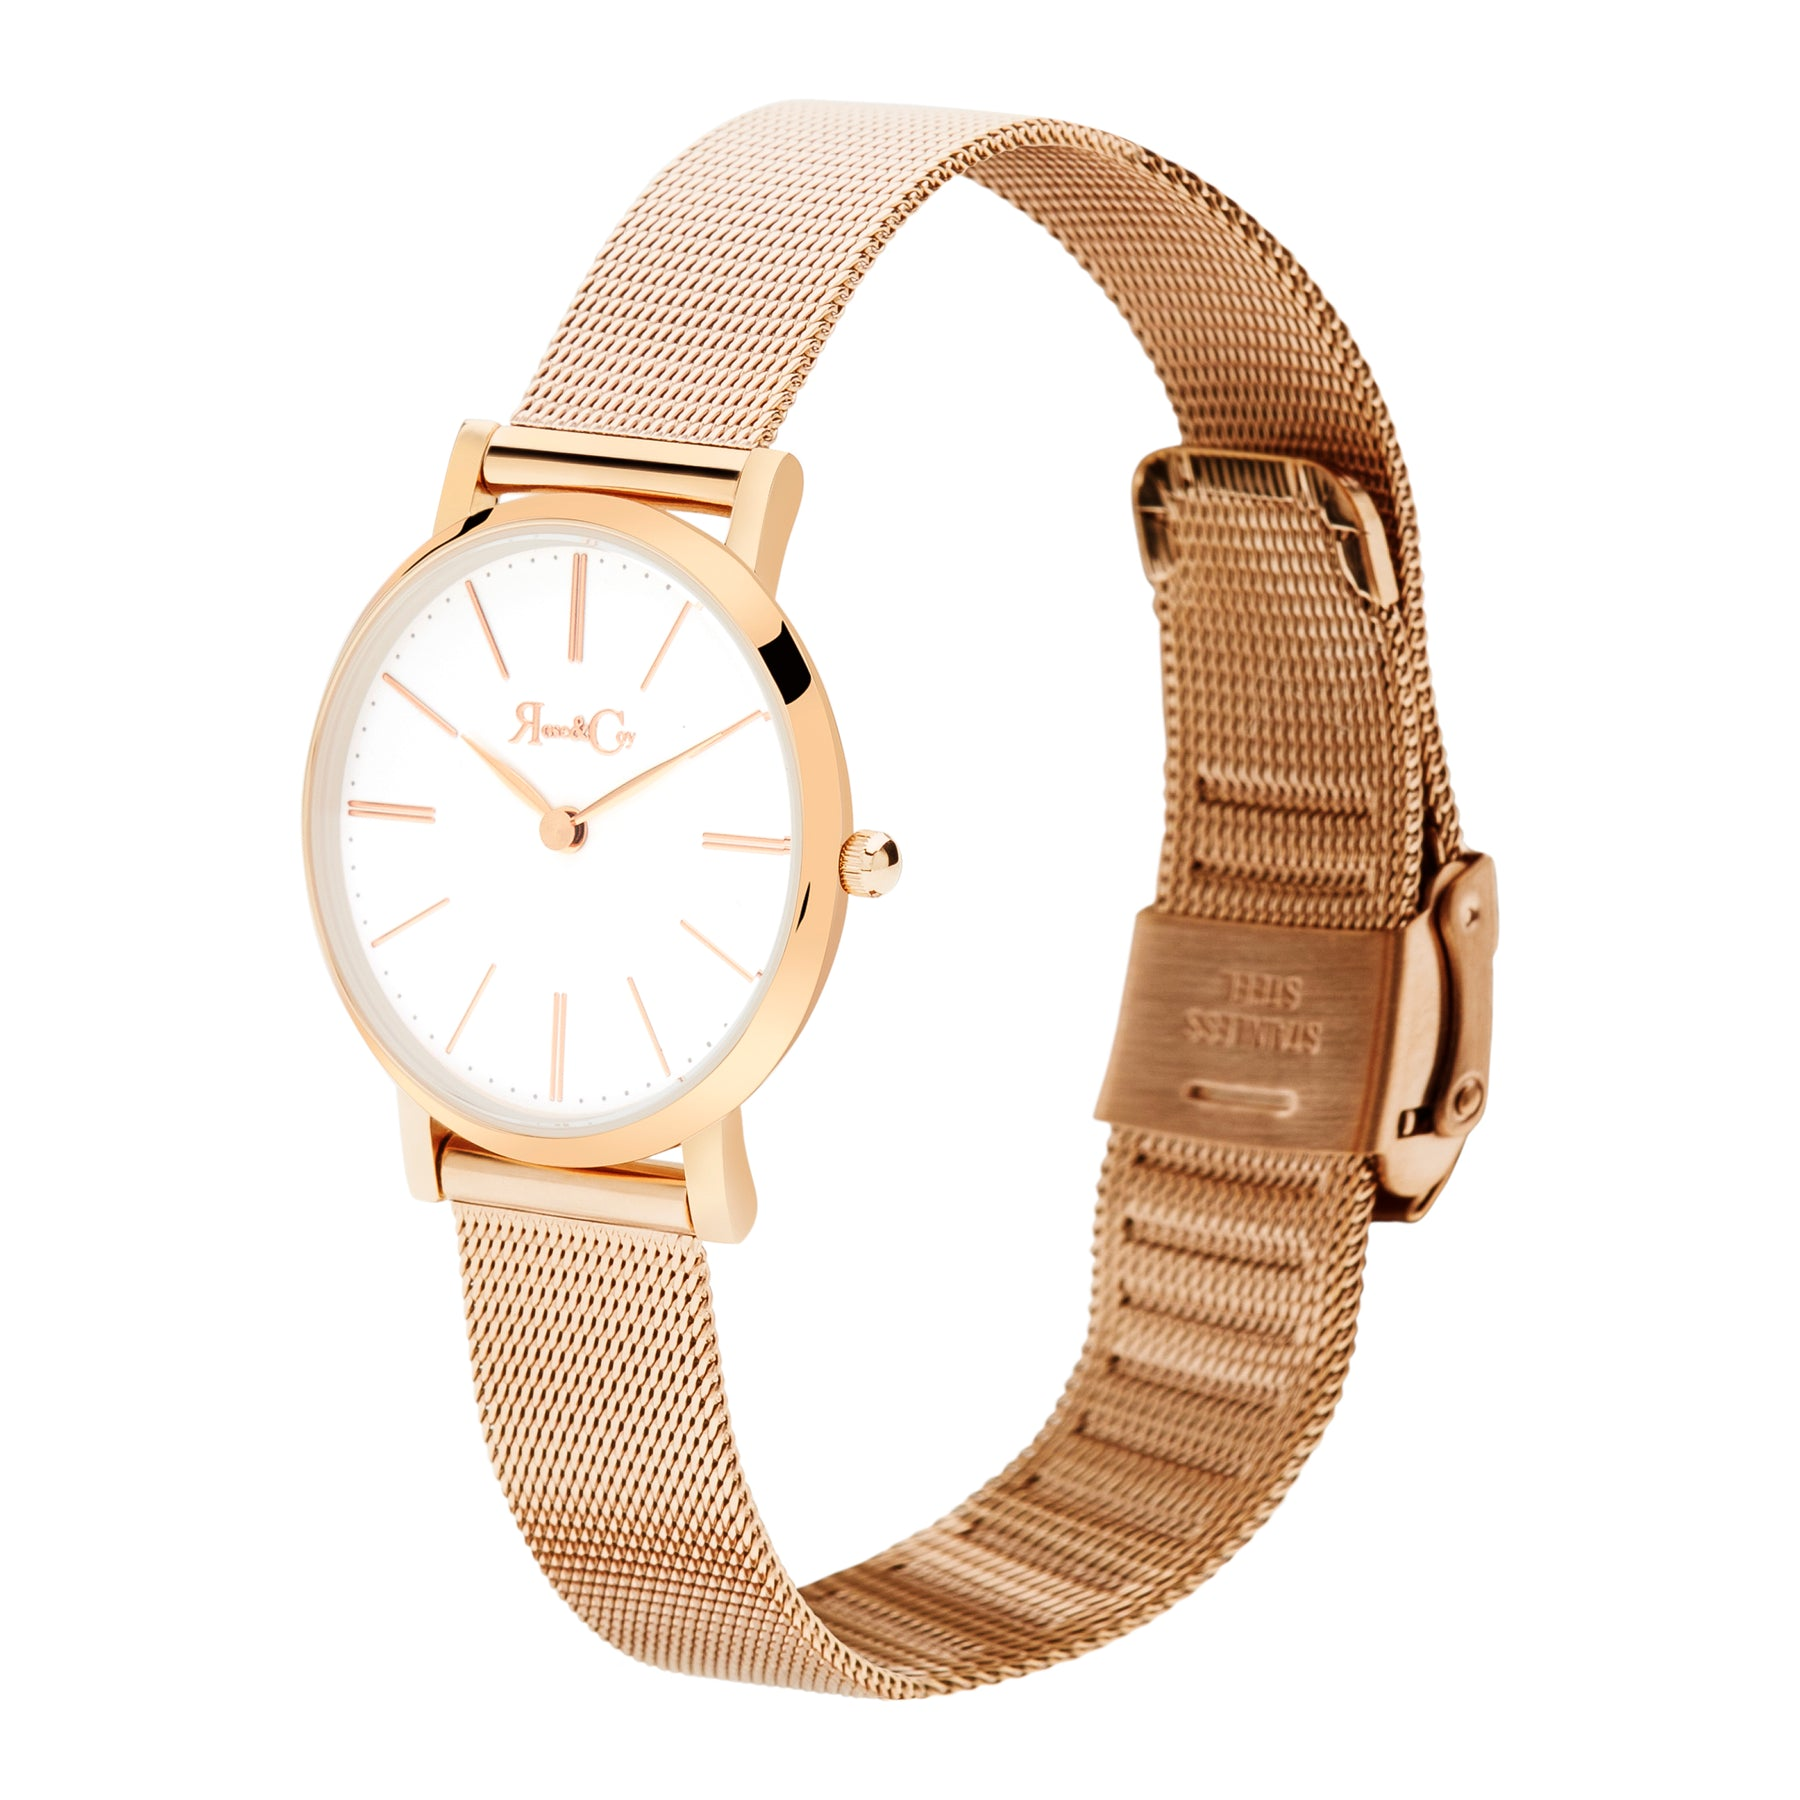 Petite Pinnacle Ultra Slim 30mm Rose Gold | Mesh Strap Watch